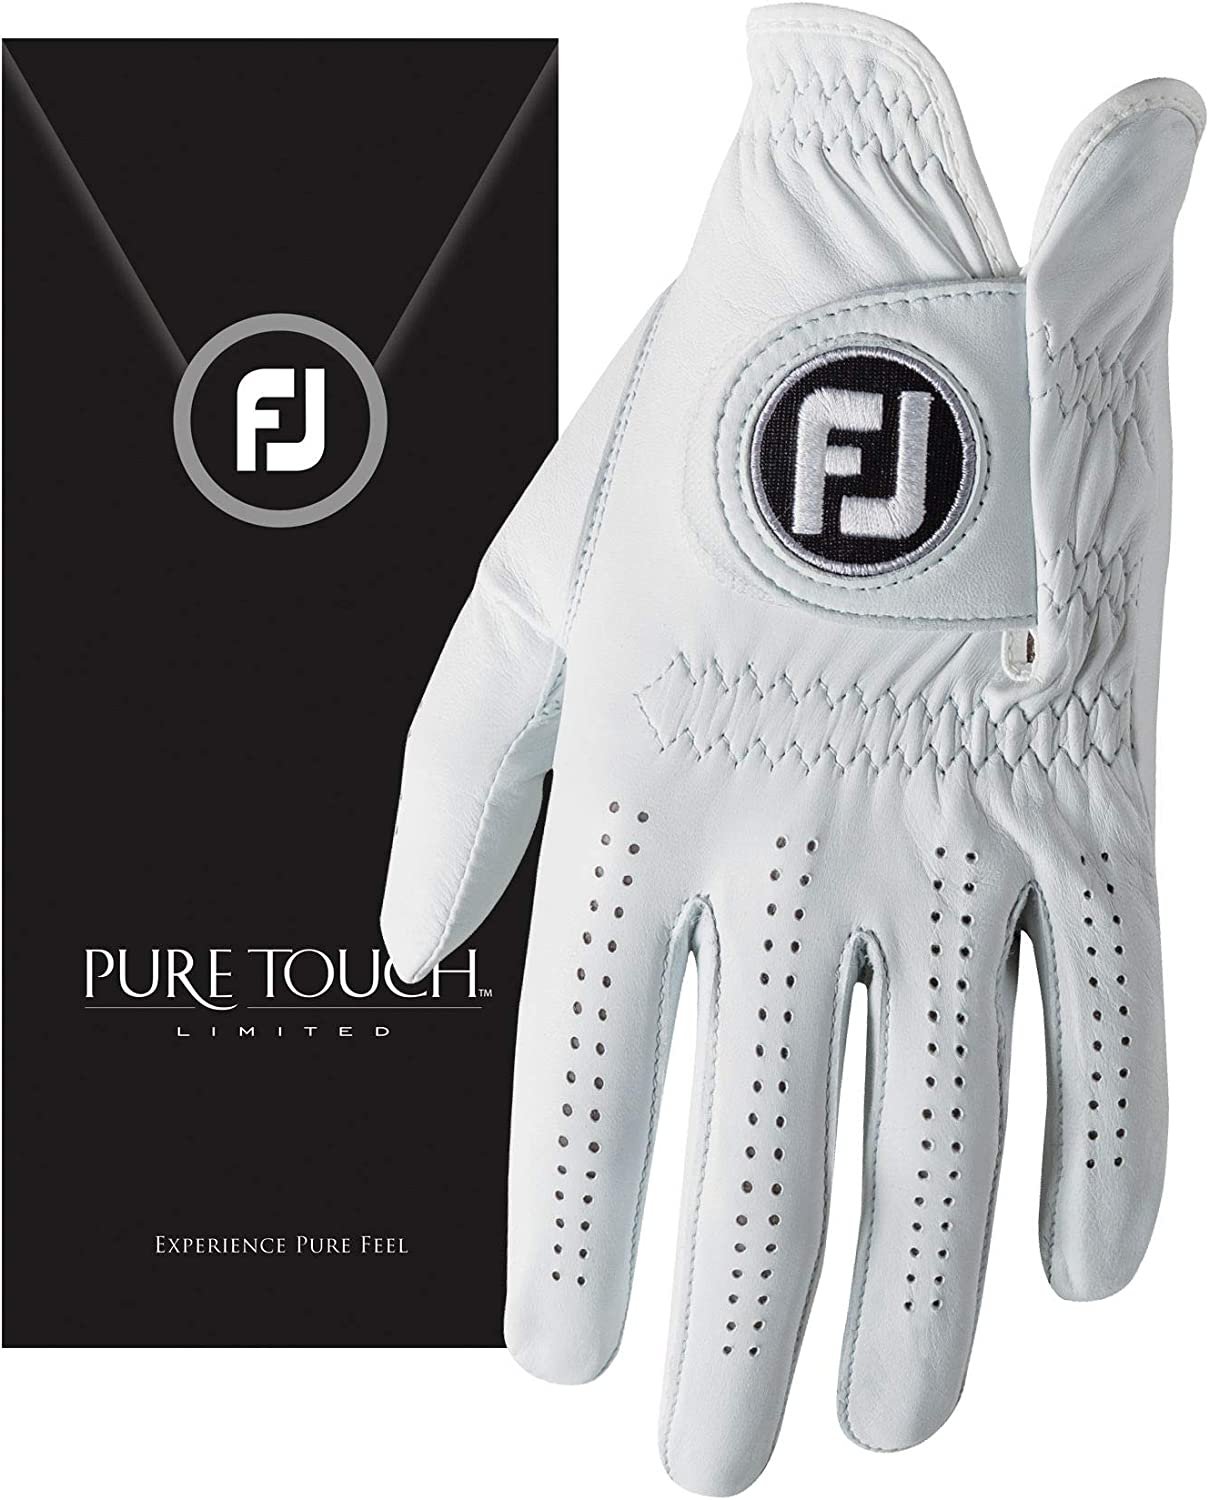 FootJoy Men's Pure Touch Limited Medium White Golf Cadet Our shop OFFers the best Popularity service Gloves